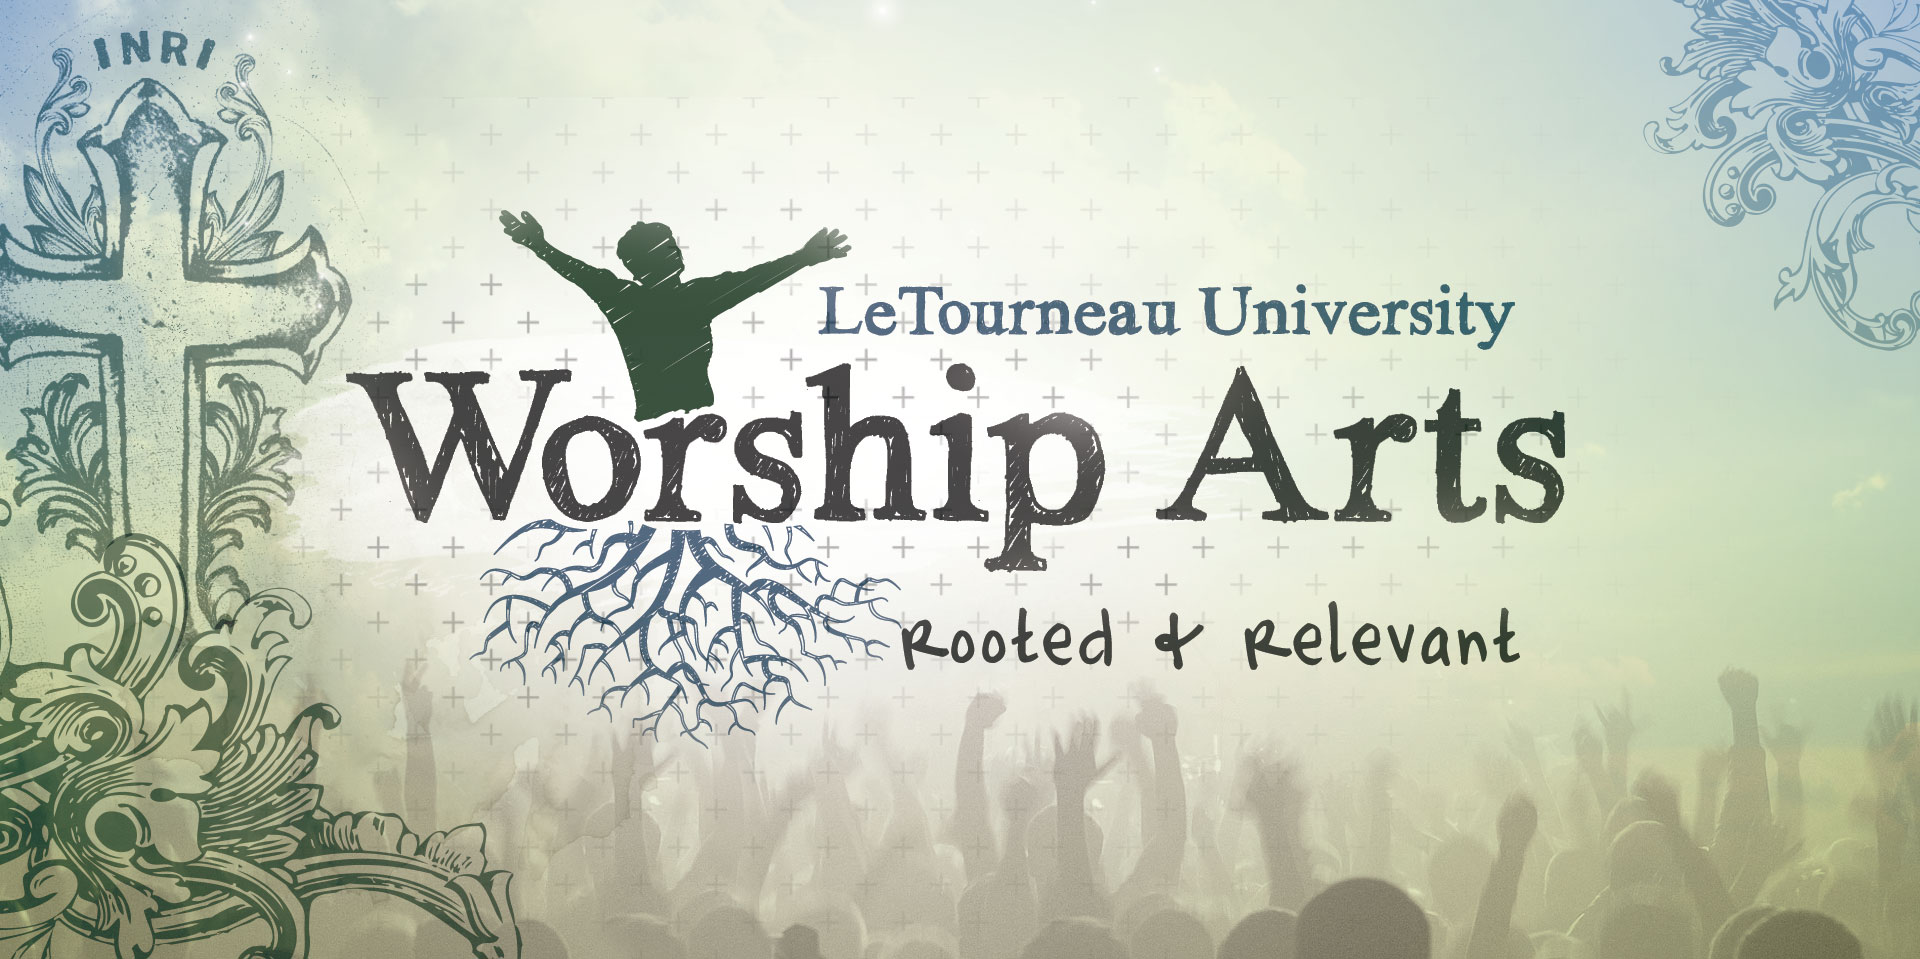 Identity work for the Worship Arts program at LeTourneau University